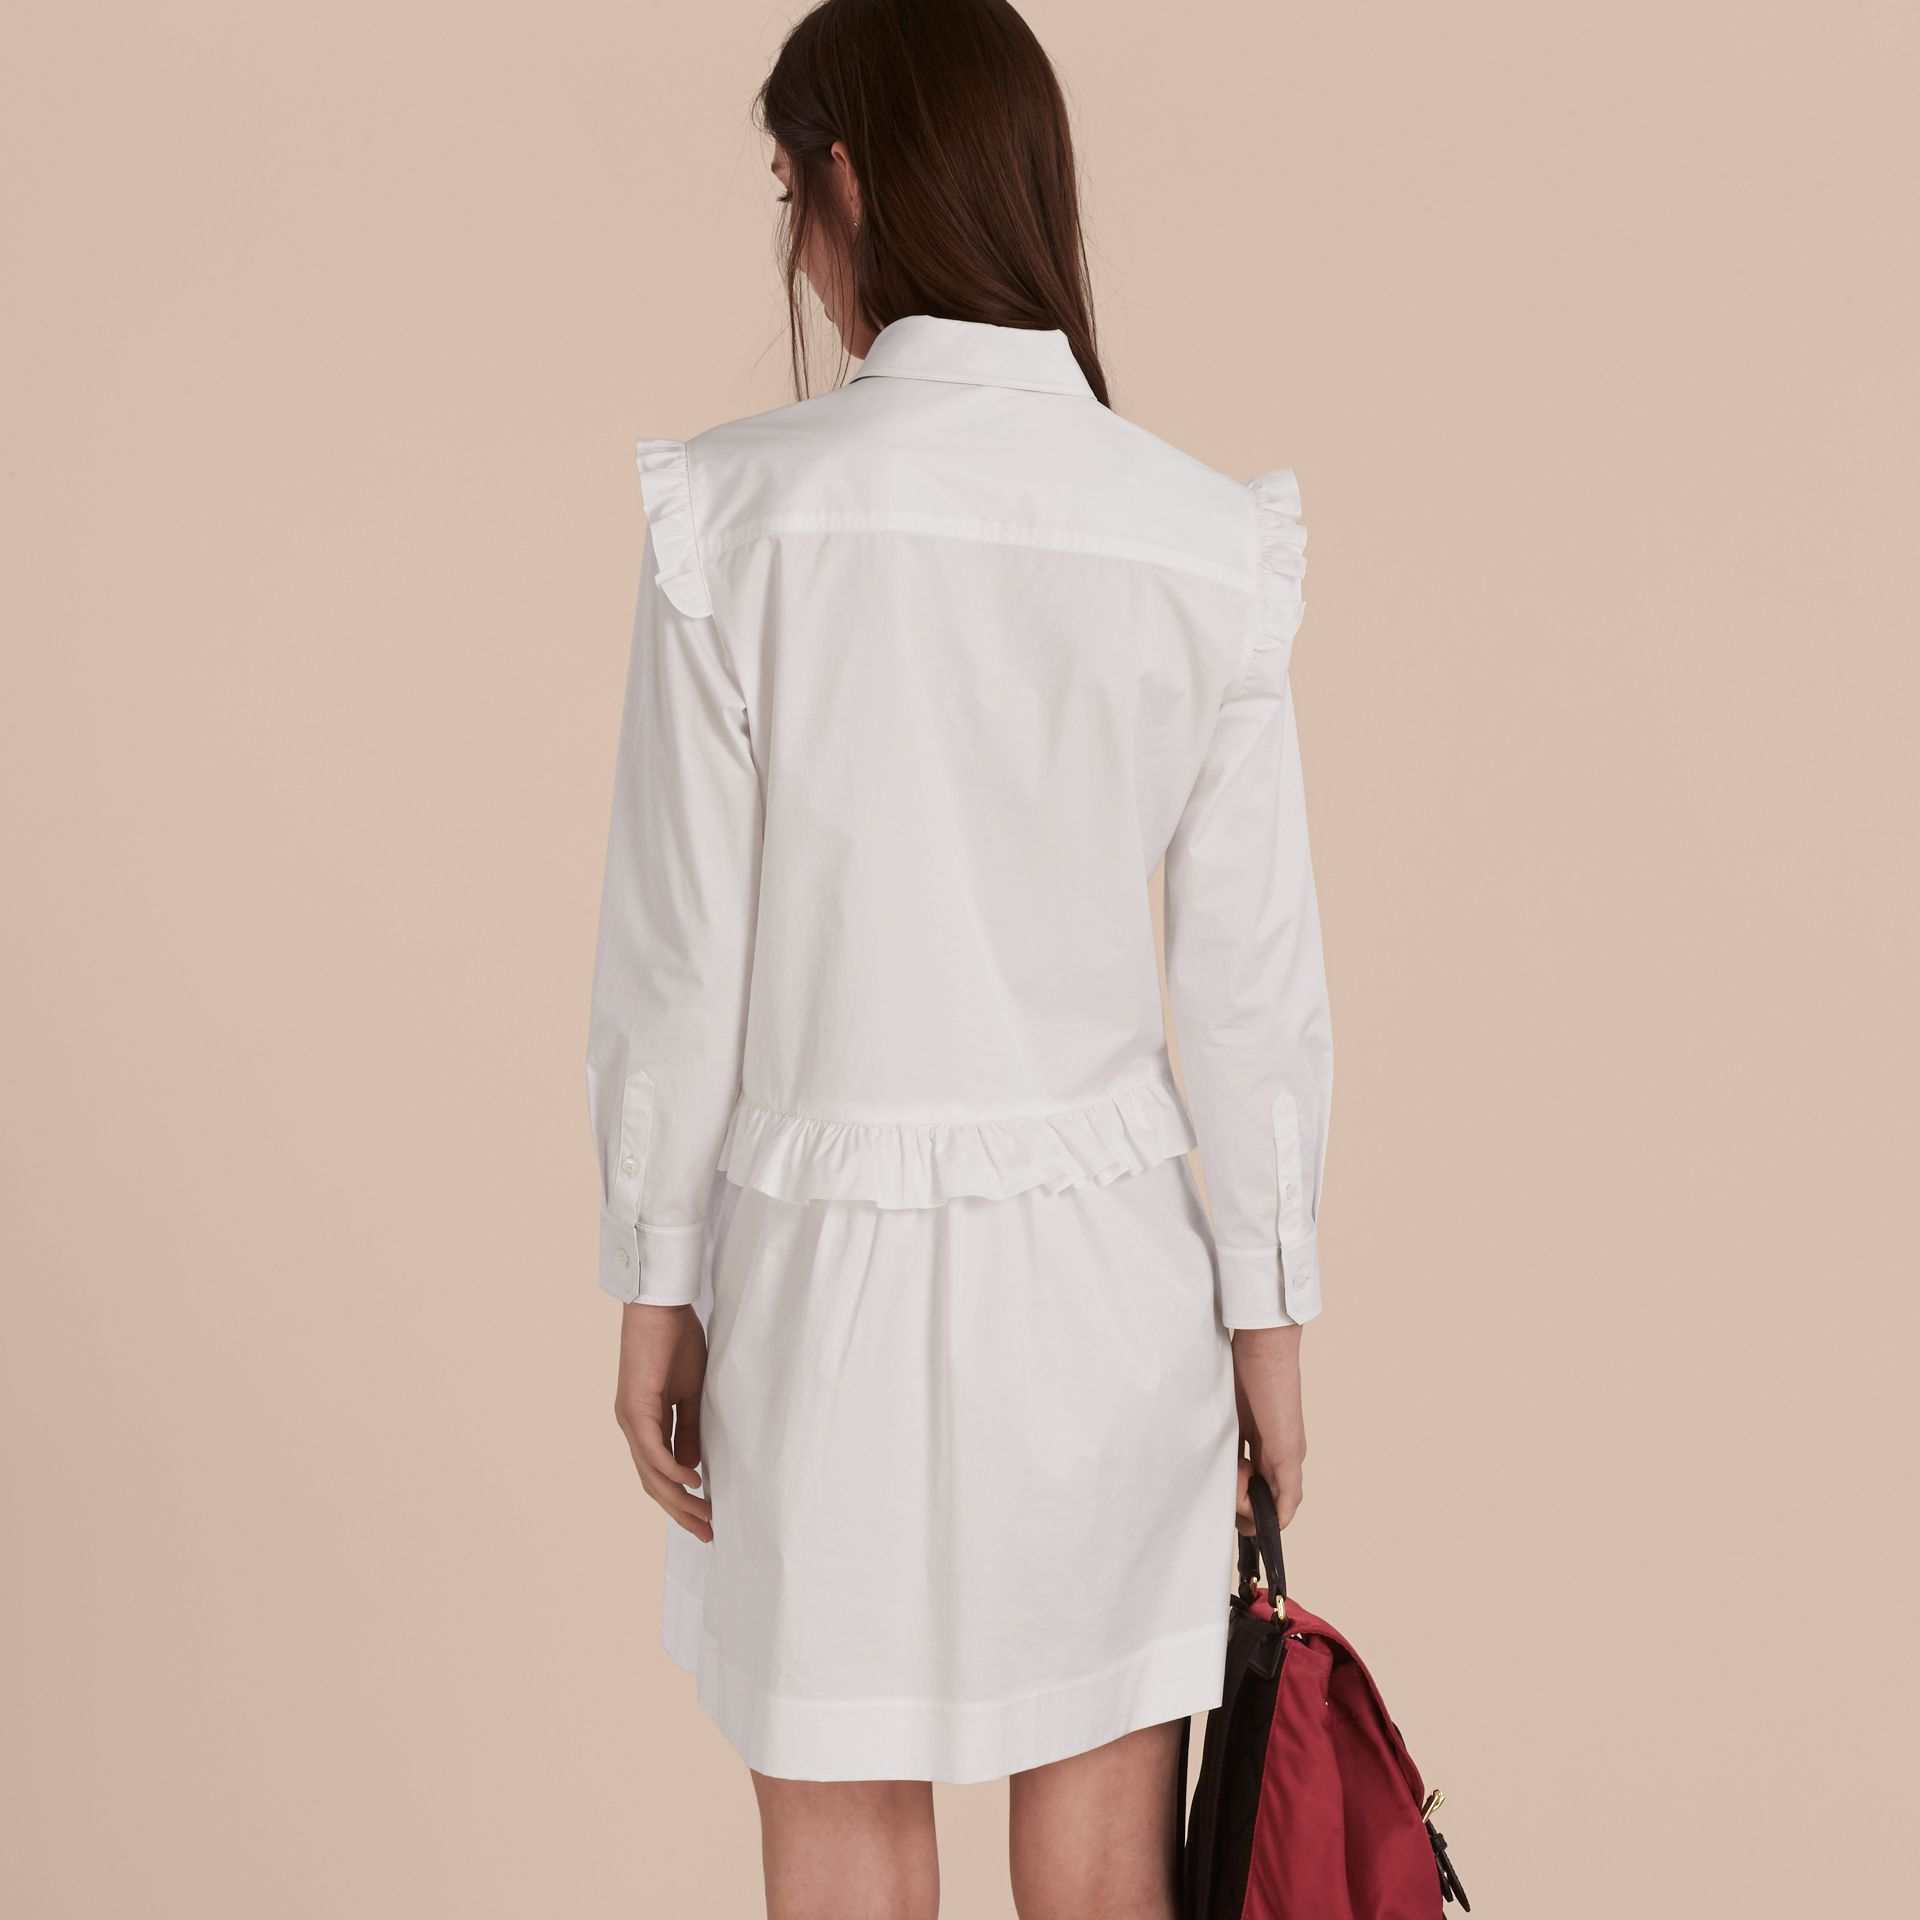 Ruffle and Check Detail Cotton Shirt Dress White - gallery image 3